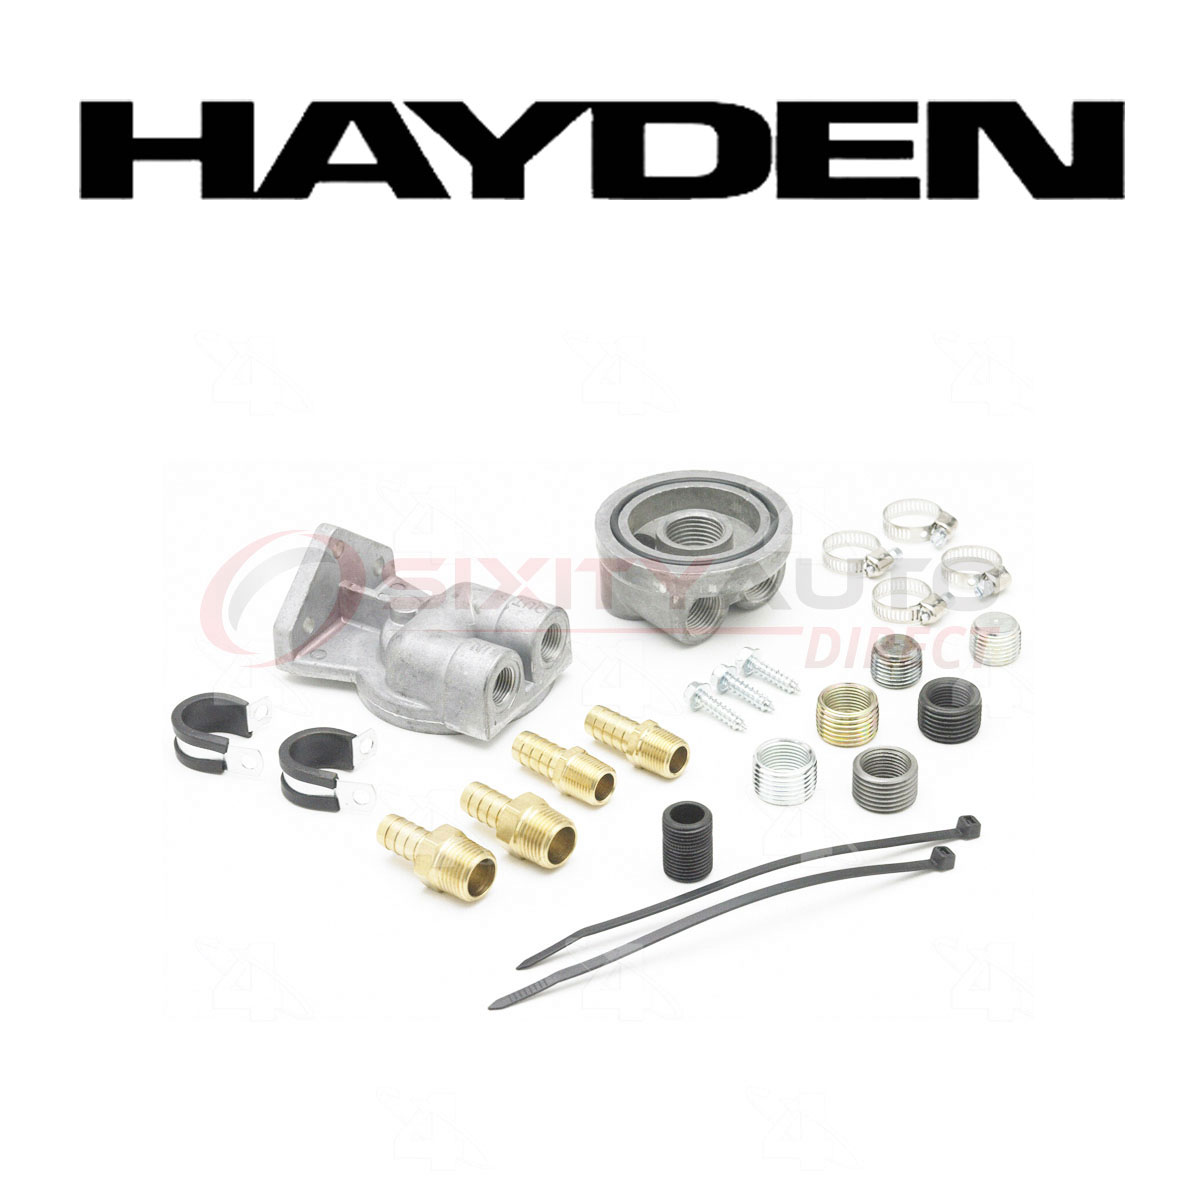 Hayden Oil Filter Remote Mounting Kit for 2004 Ford F-150